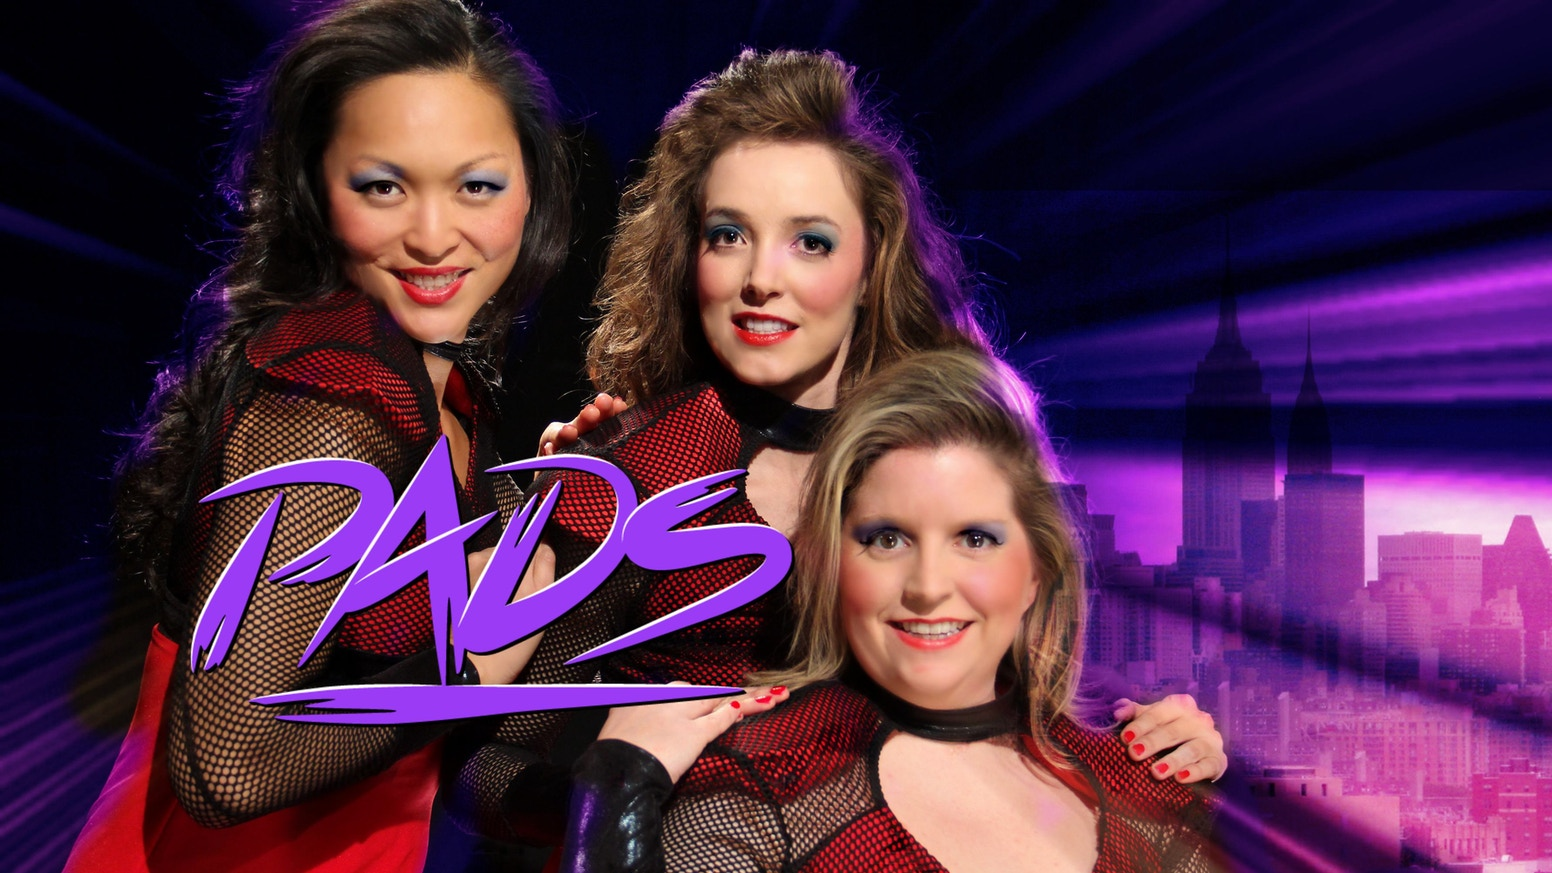 It's 1983; Three women take on Wall Street in this workplace comedy series about friendship, chasing dreams, & Big shoulder PADS!